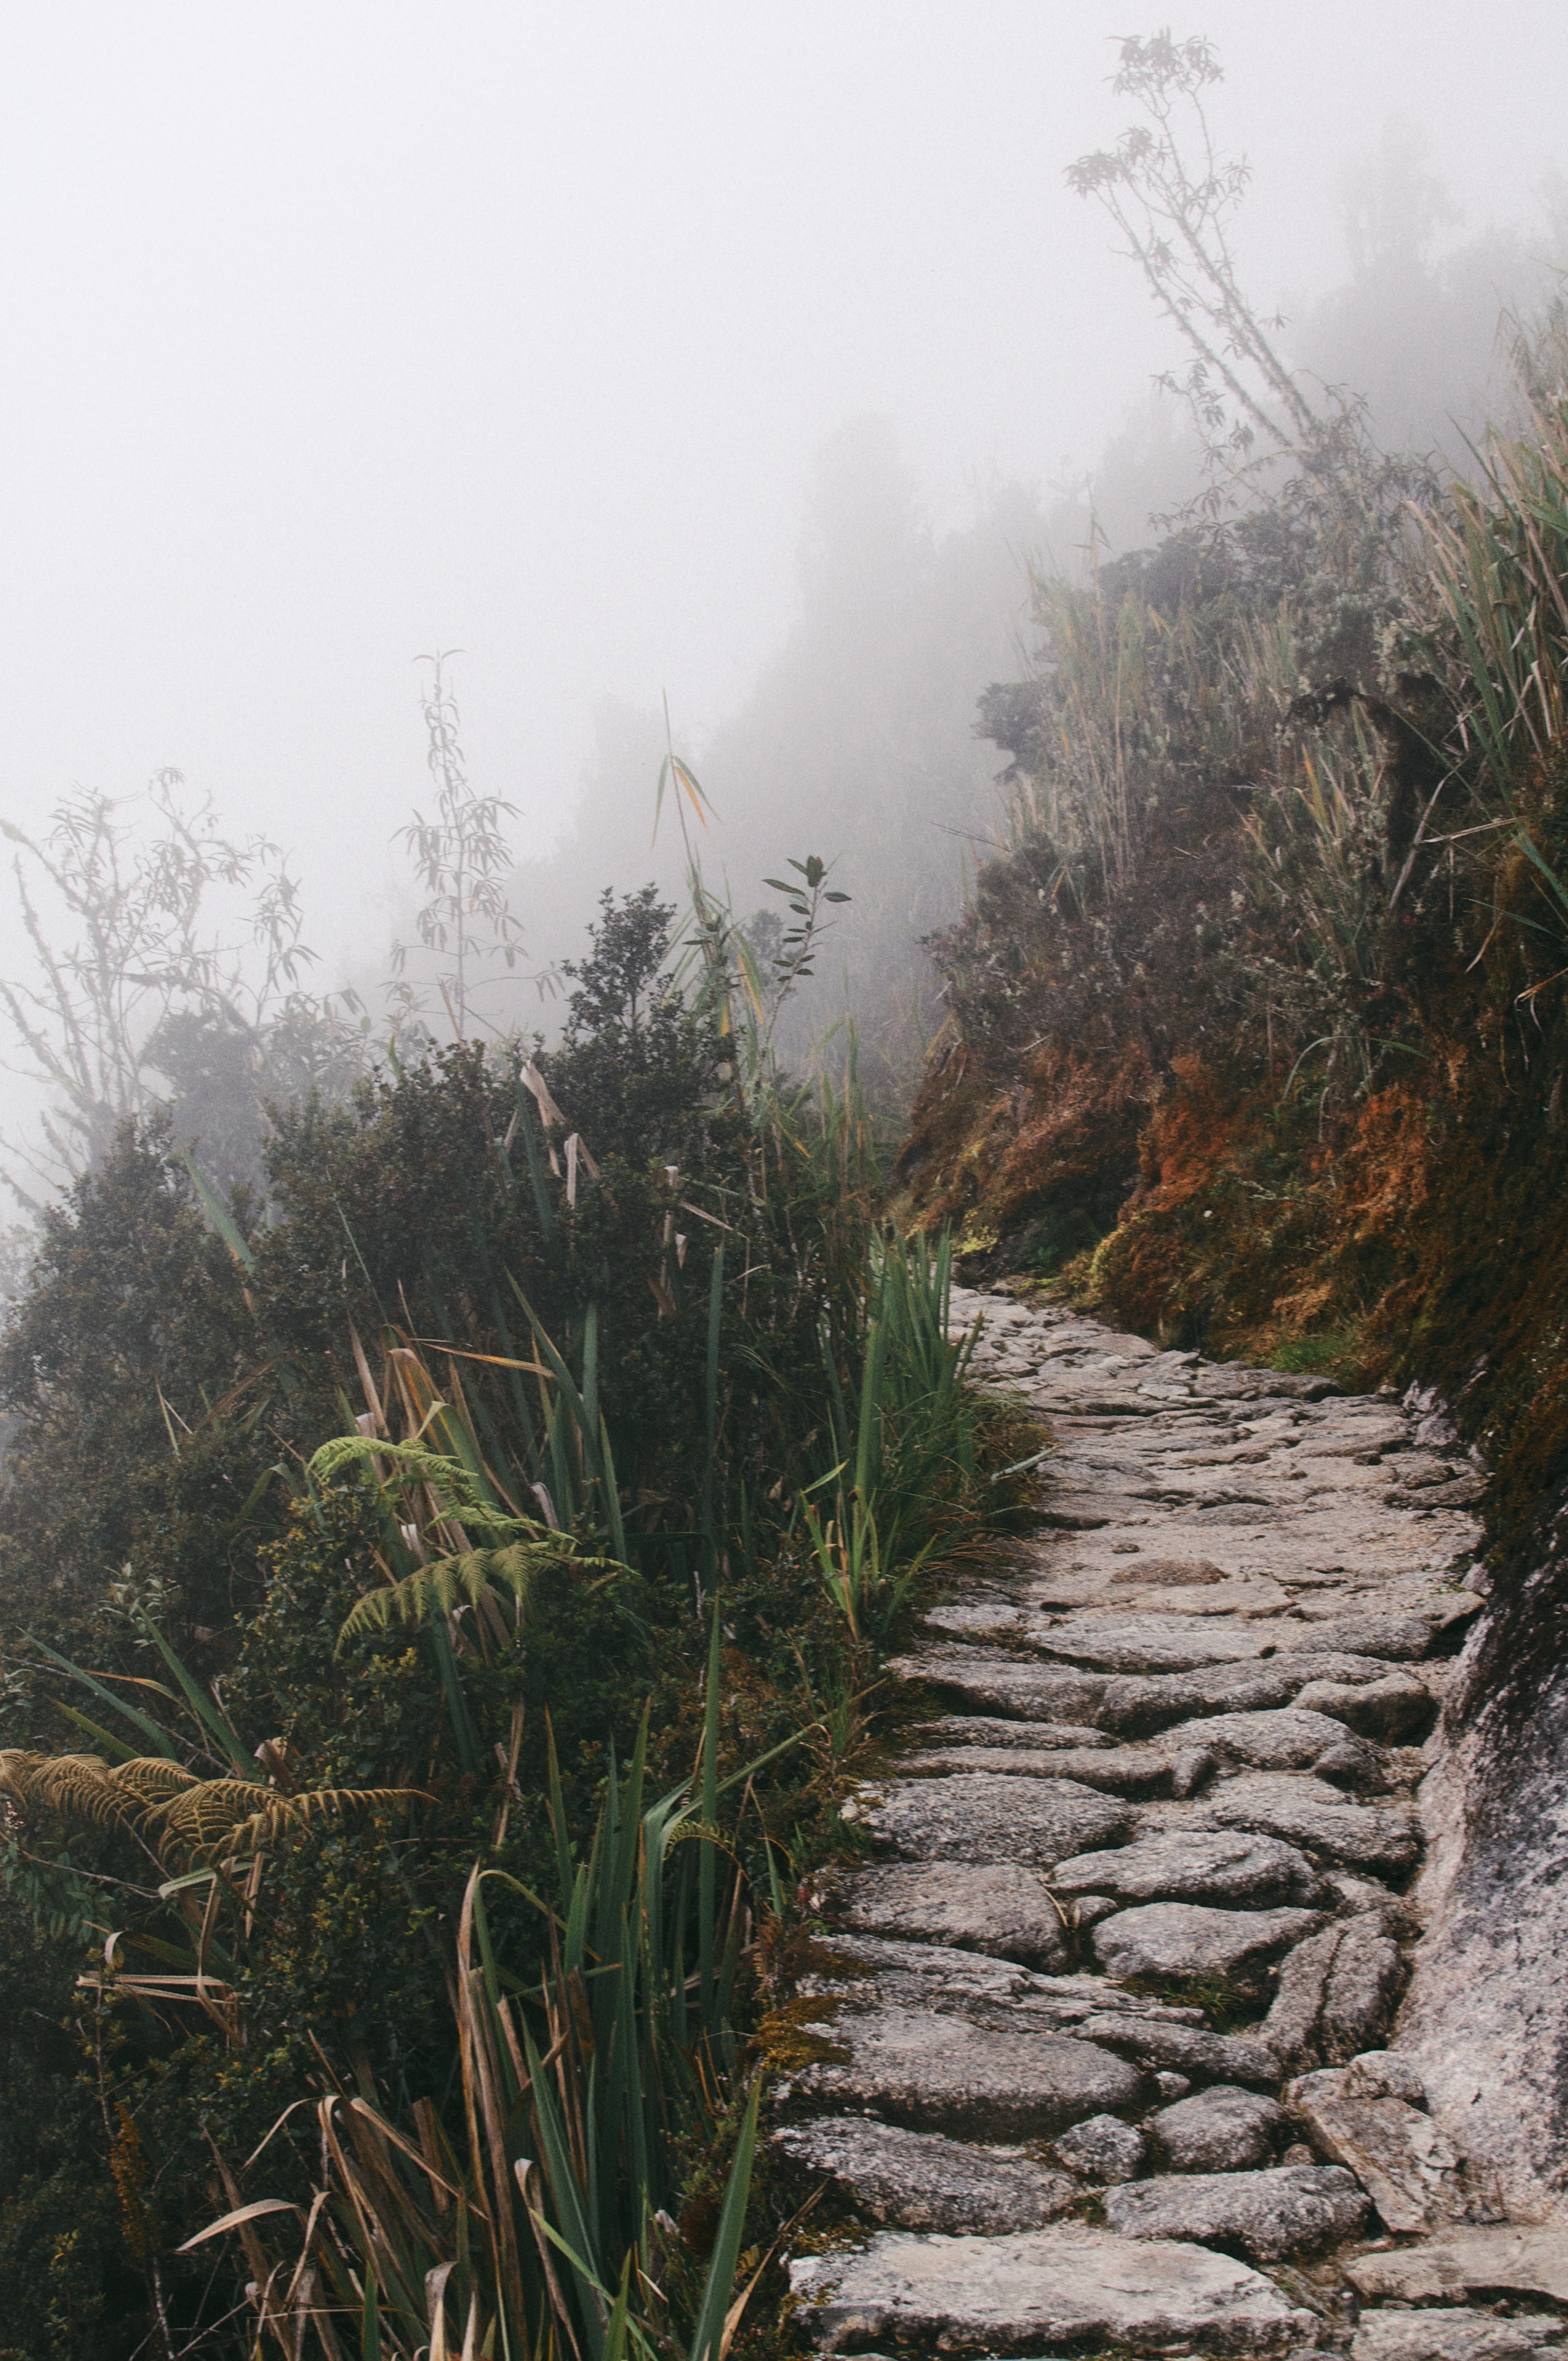 Stone trail path lined by tall gray foliage in Peru